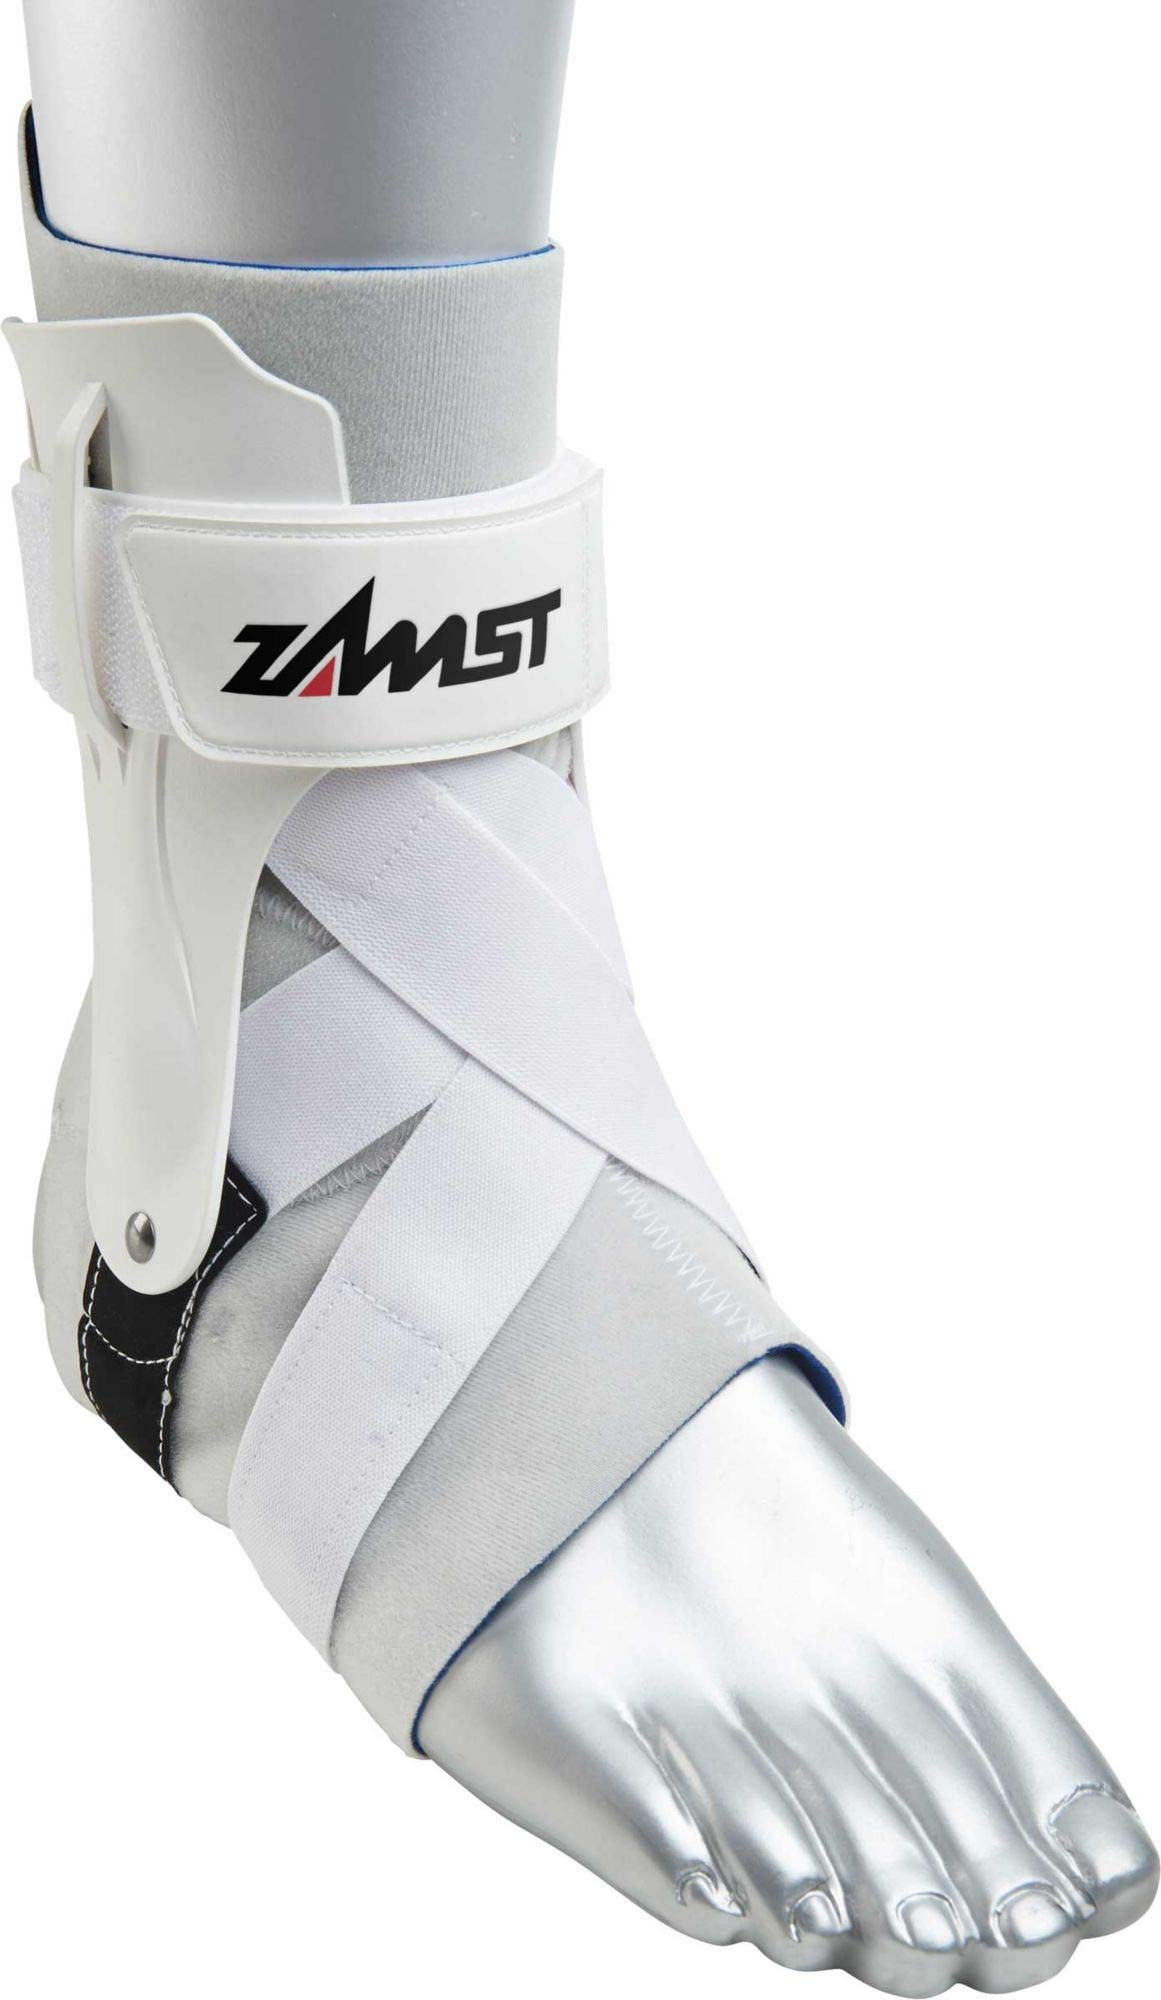 Zamst A2-DX Strong Support Ankle Brace, White, Medium - Left